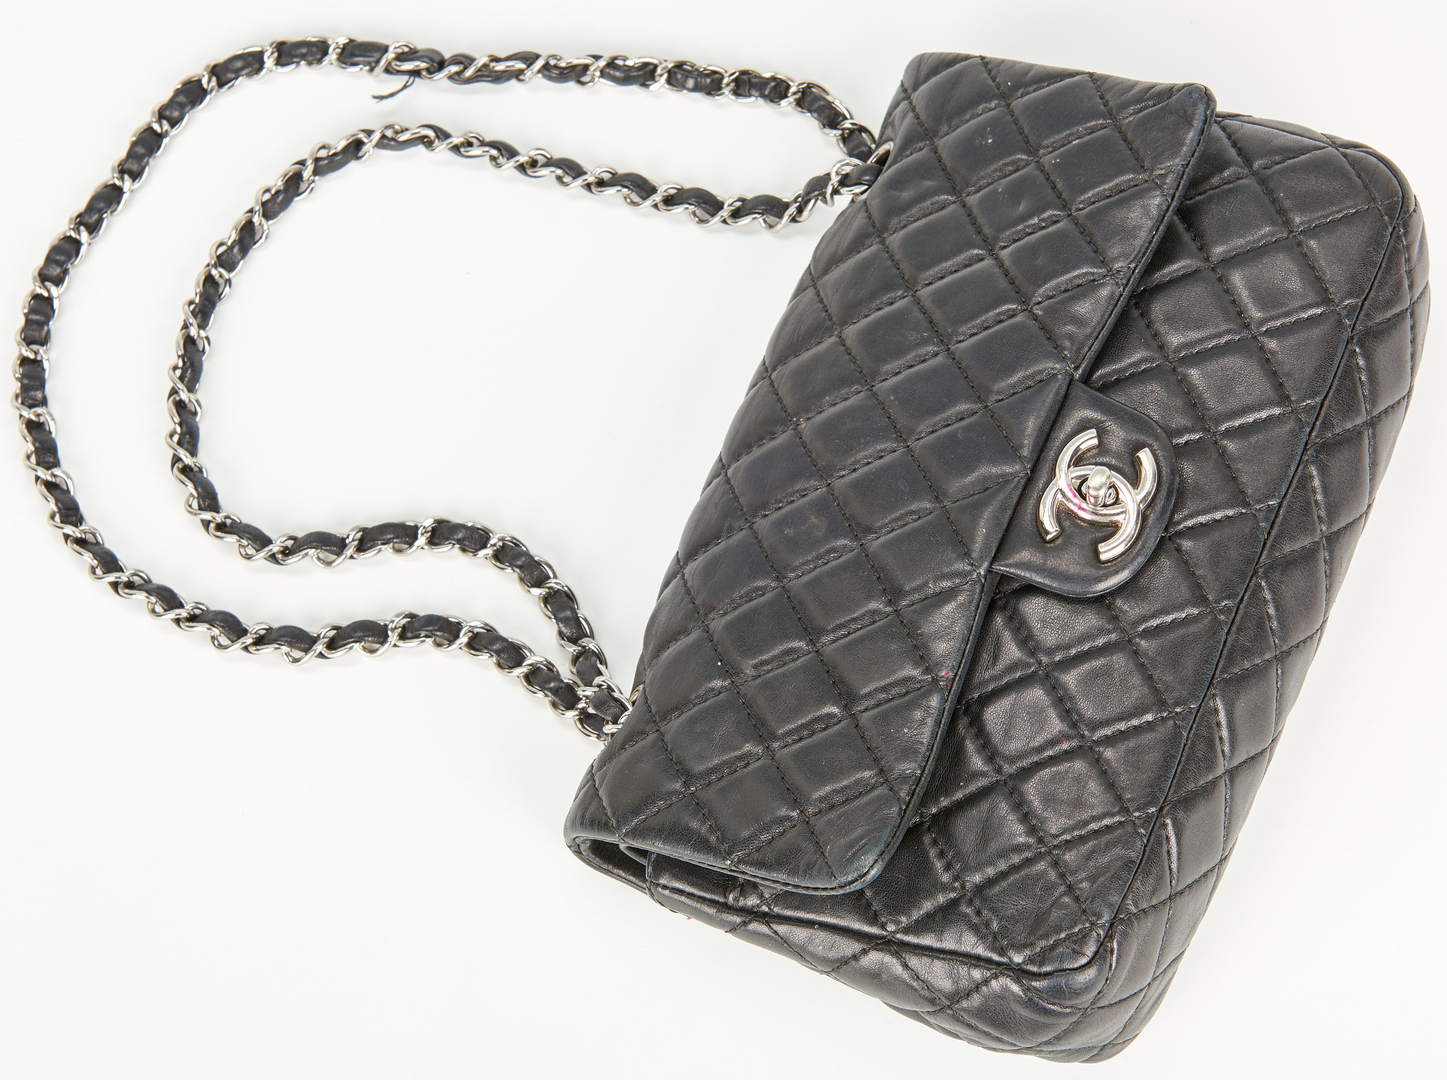 Lot 708: Chanel Classic Double Flap Black Quilted Purse, Small